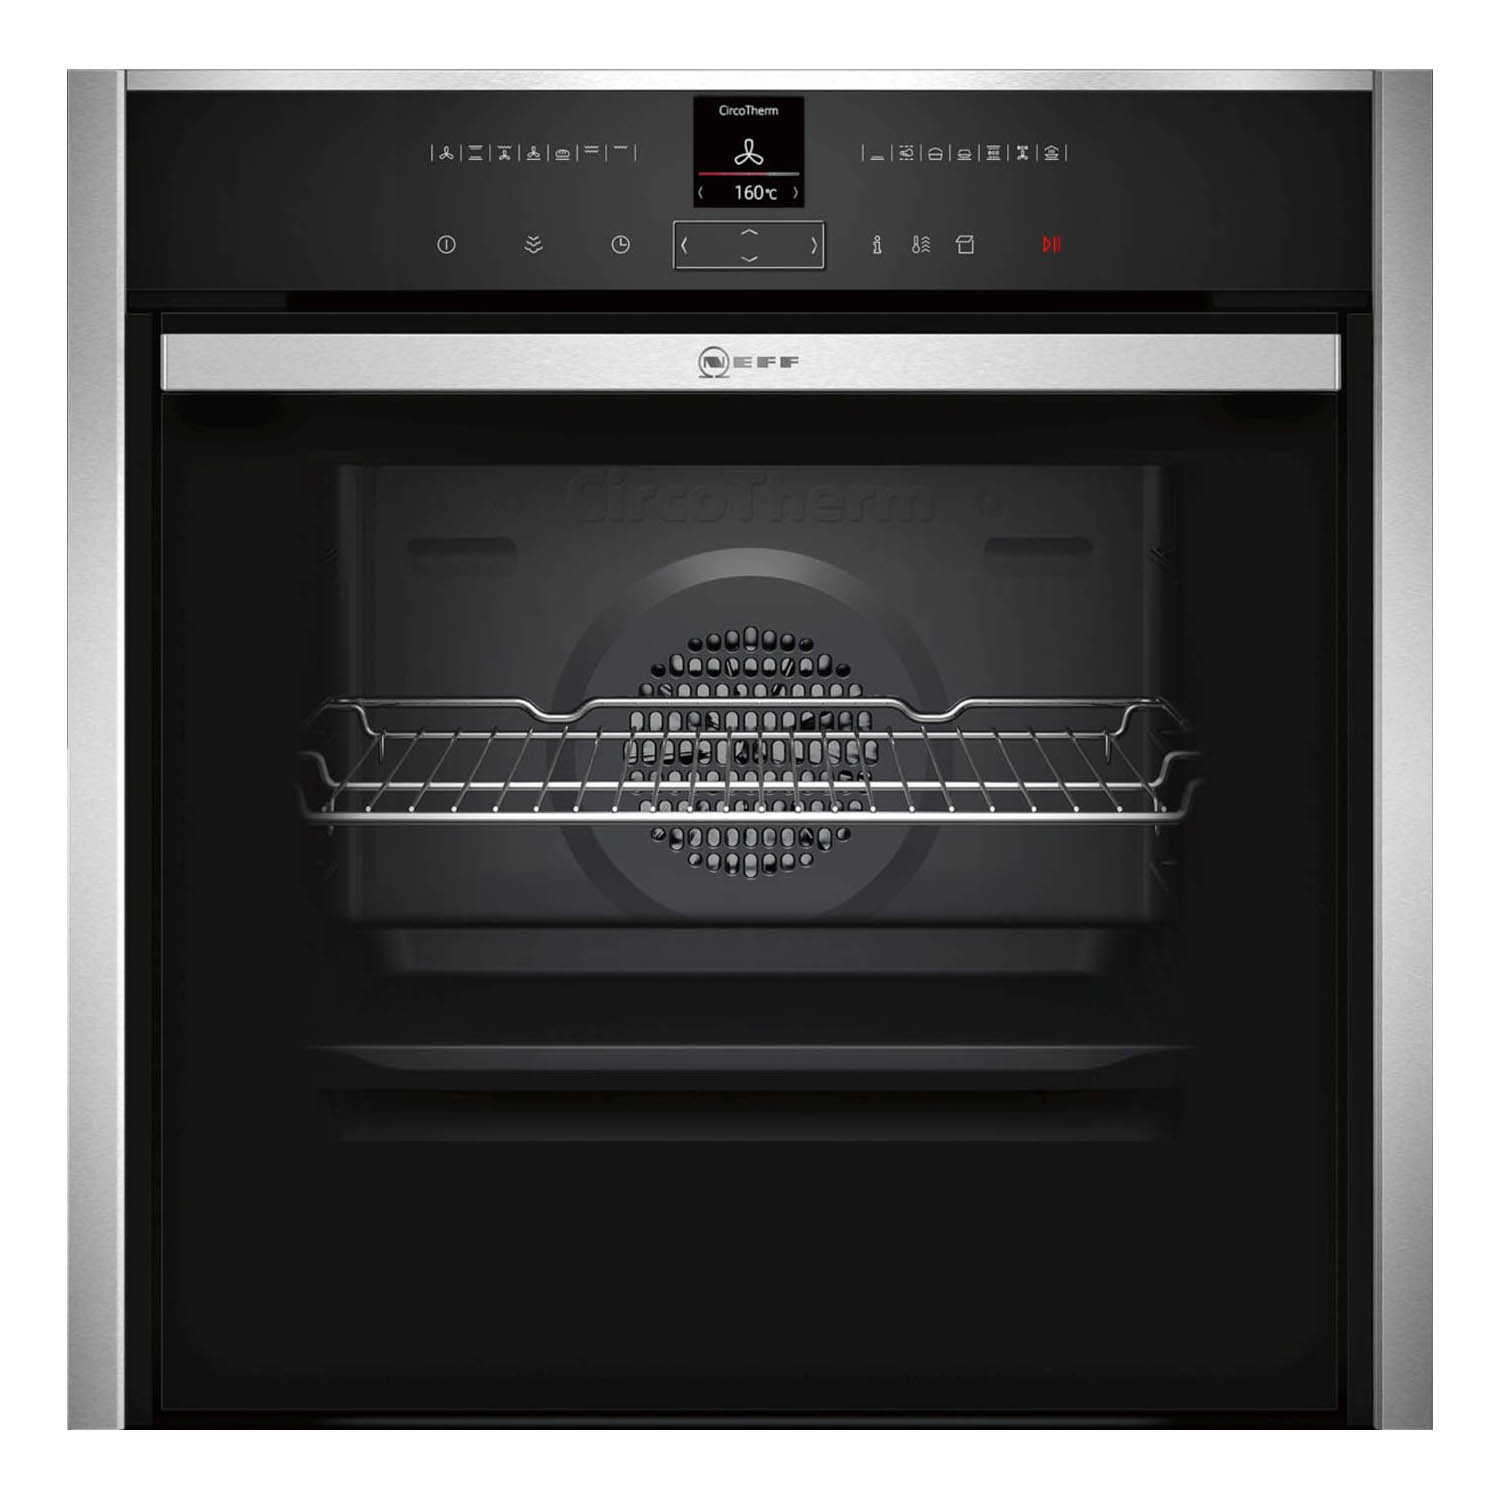 Neff N70 Slide & Hide Oven with VarioSteam B47VR32N0B